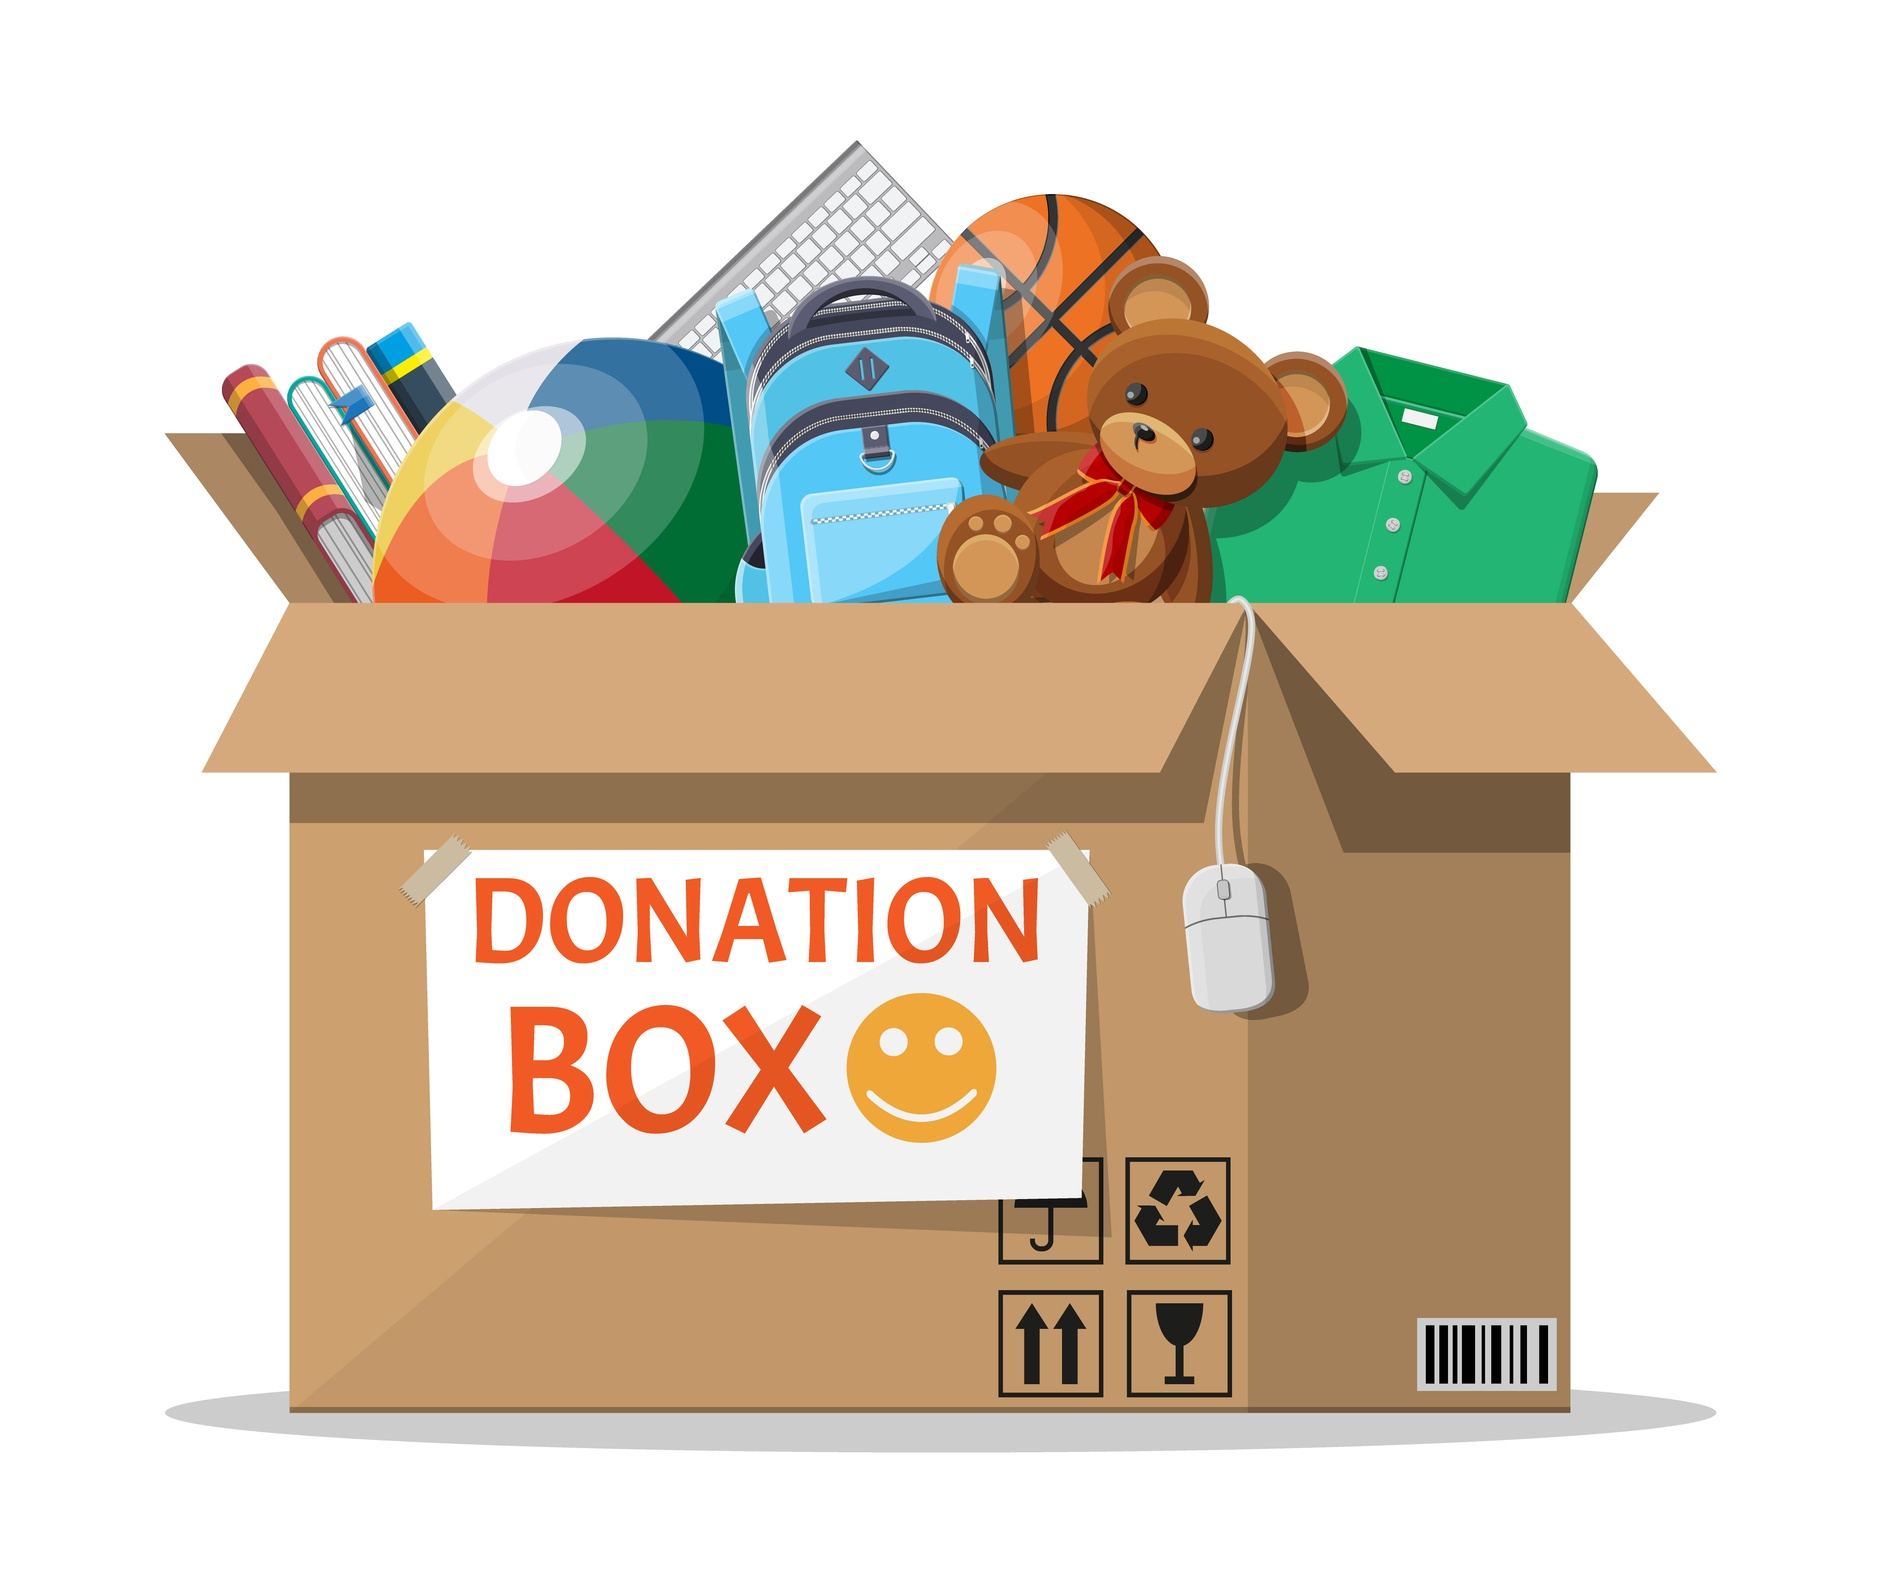 BMc Azurri's Top Tips To Help Charities Make Most of Unwanted Items